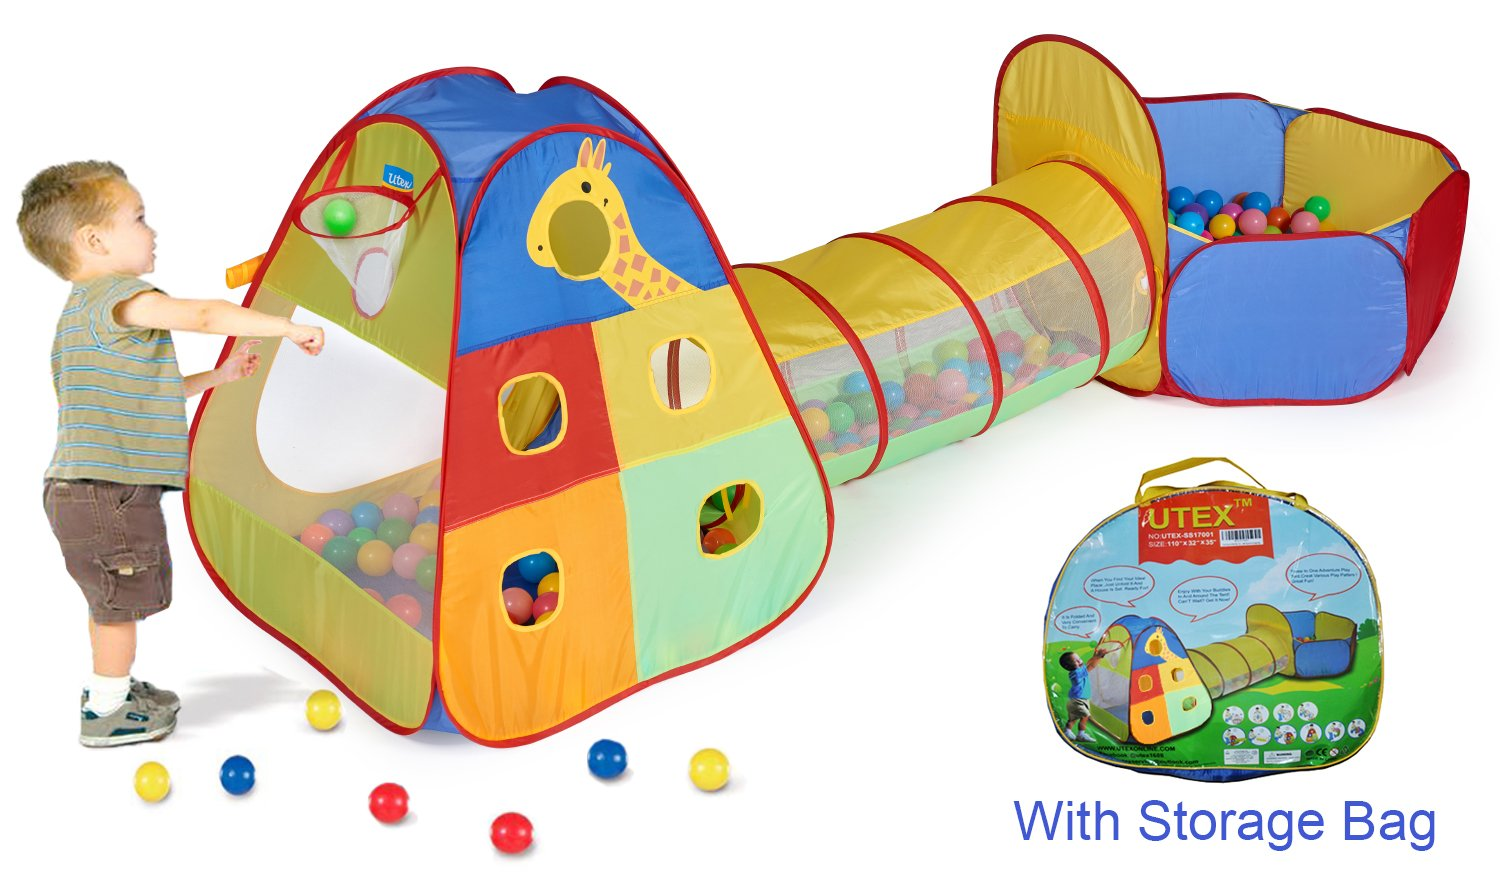 UTEX 3 Kids Play Tent and Tunnel